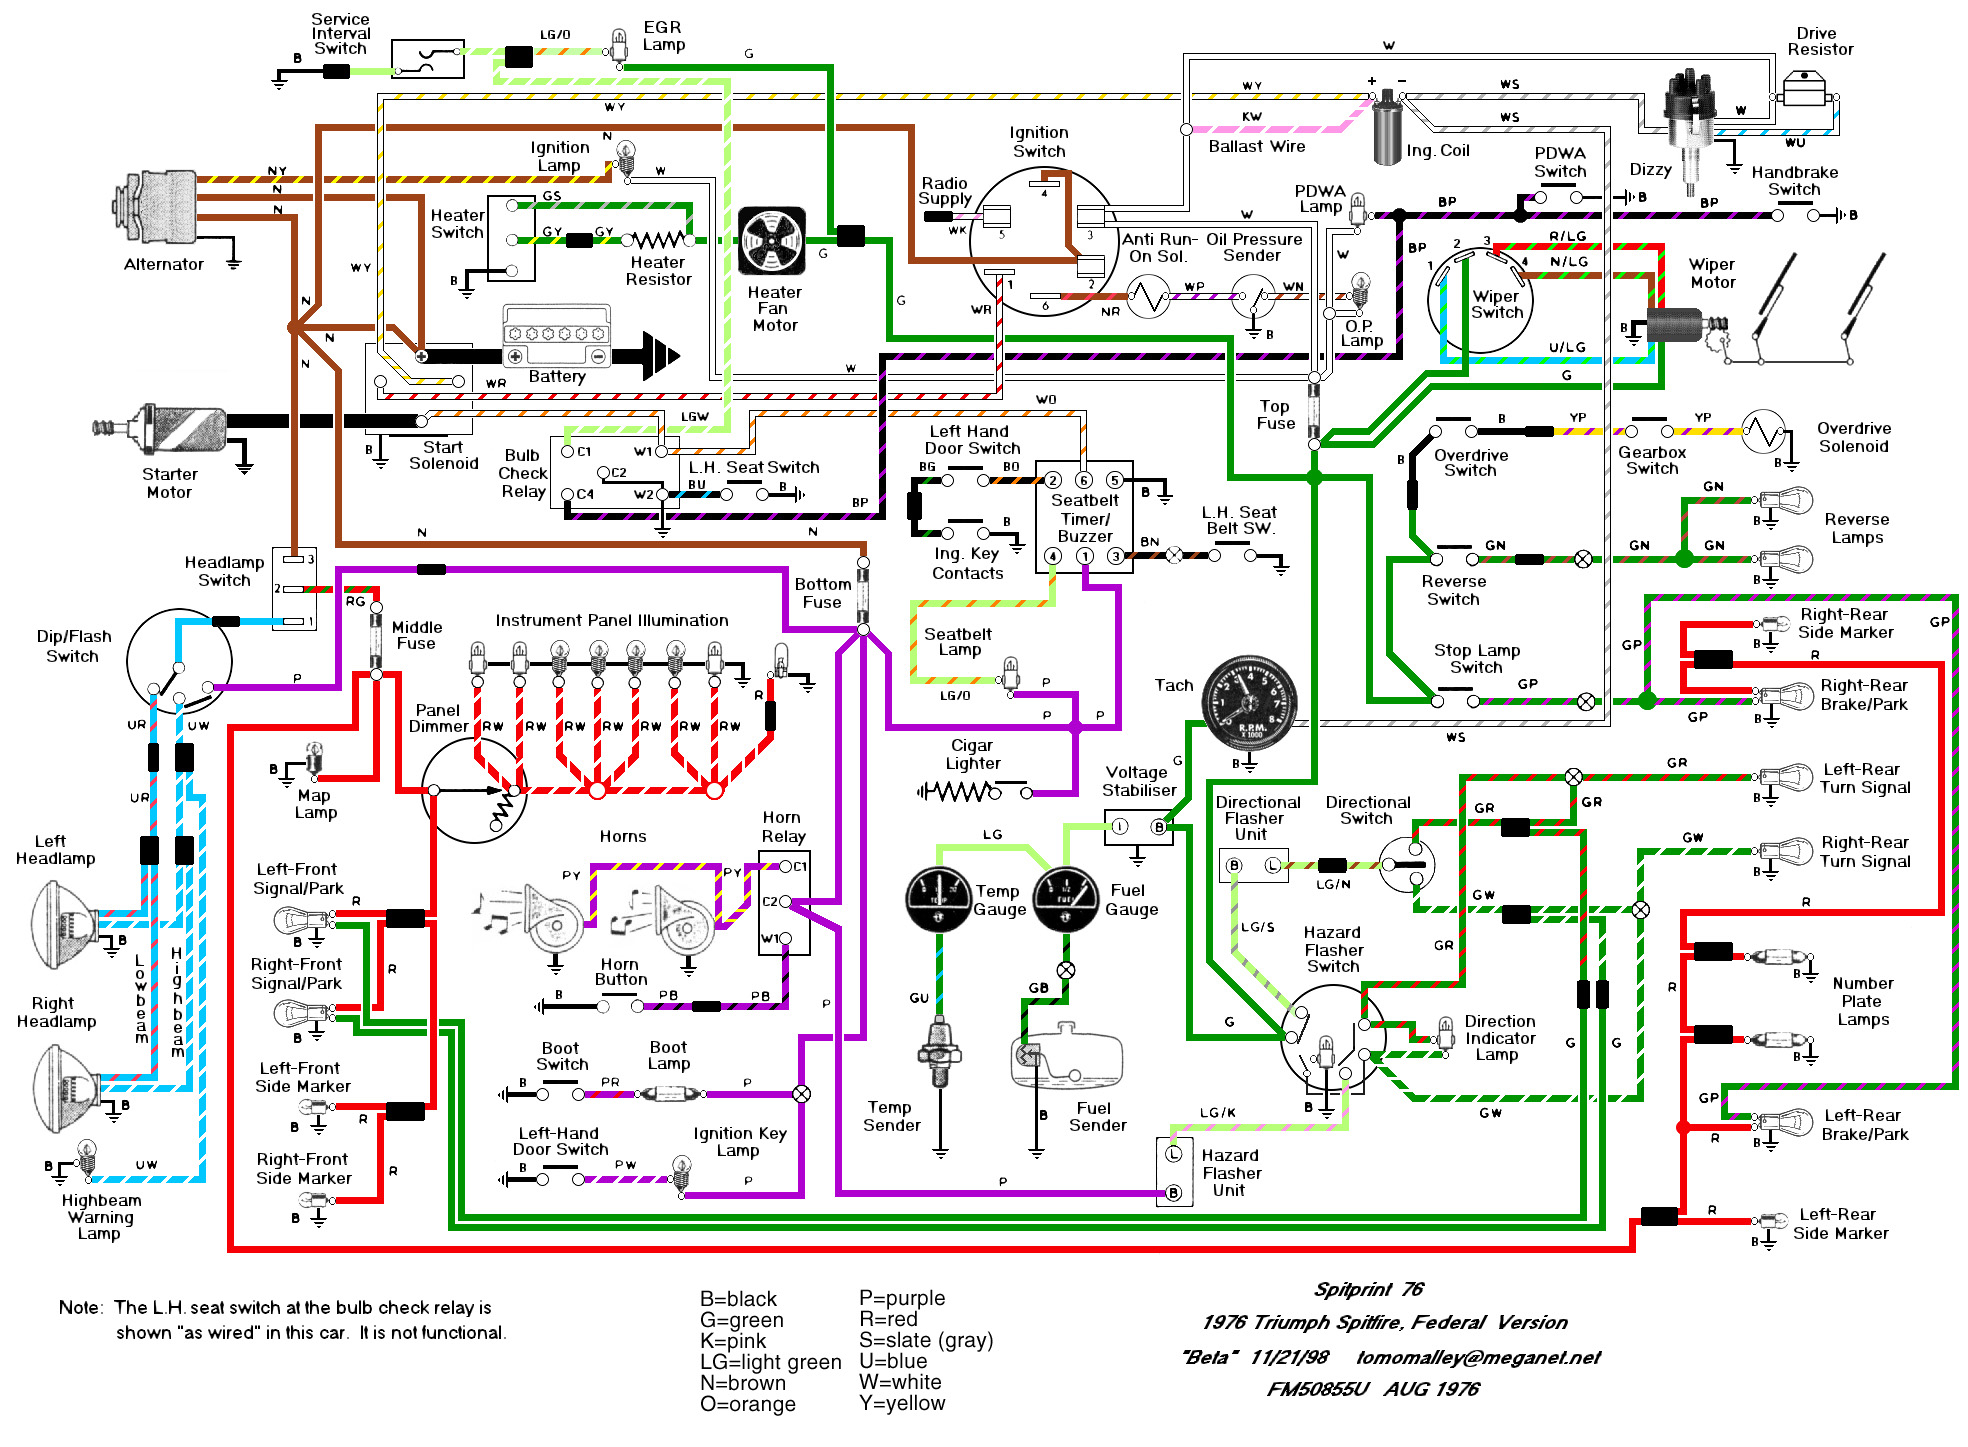 76diagram wiring gremlins please help spitfire & gt6 forum triumph 1978 triumph spitfire wiring diagram at alyssarenee.co